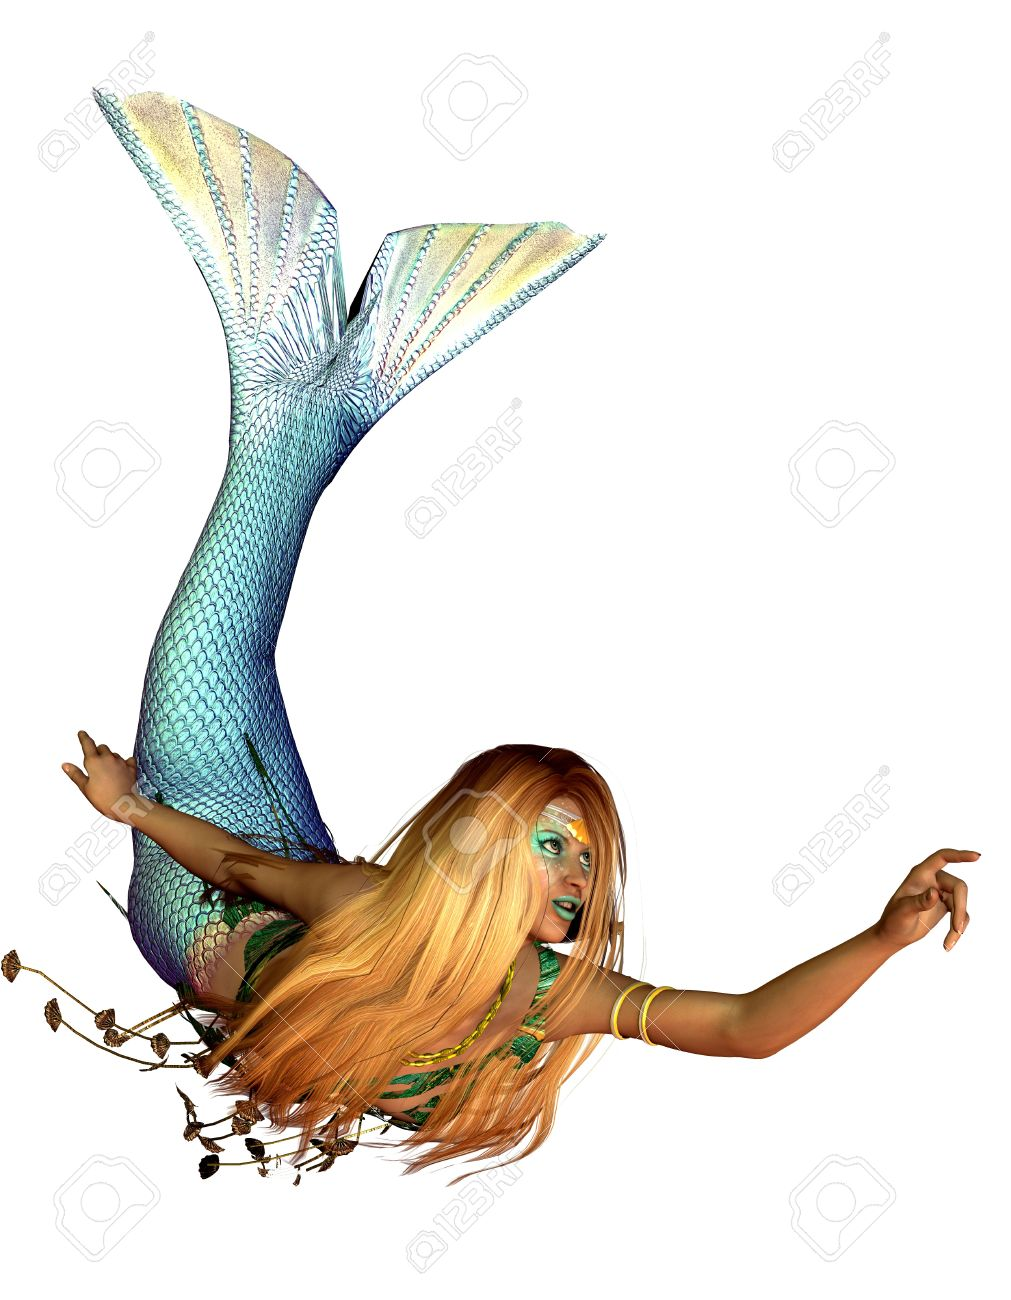 3d rendering of a mermaid in a swimming pose illustration stock